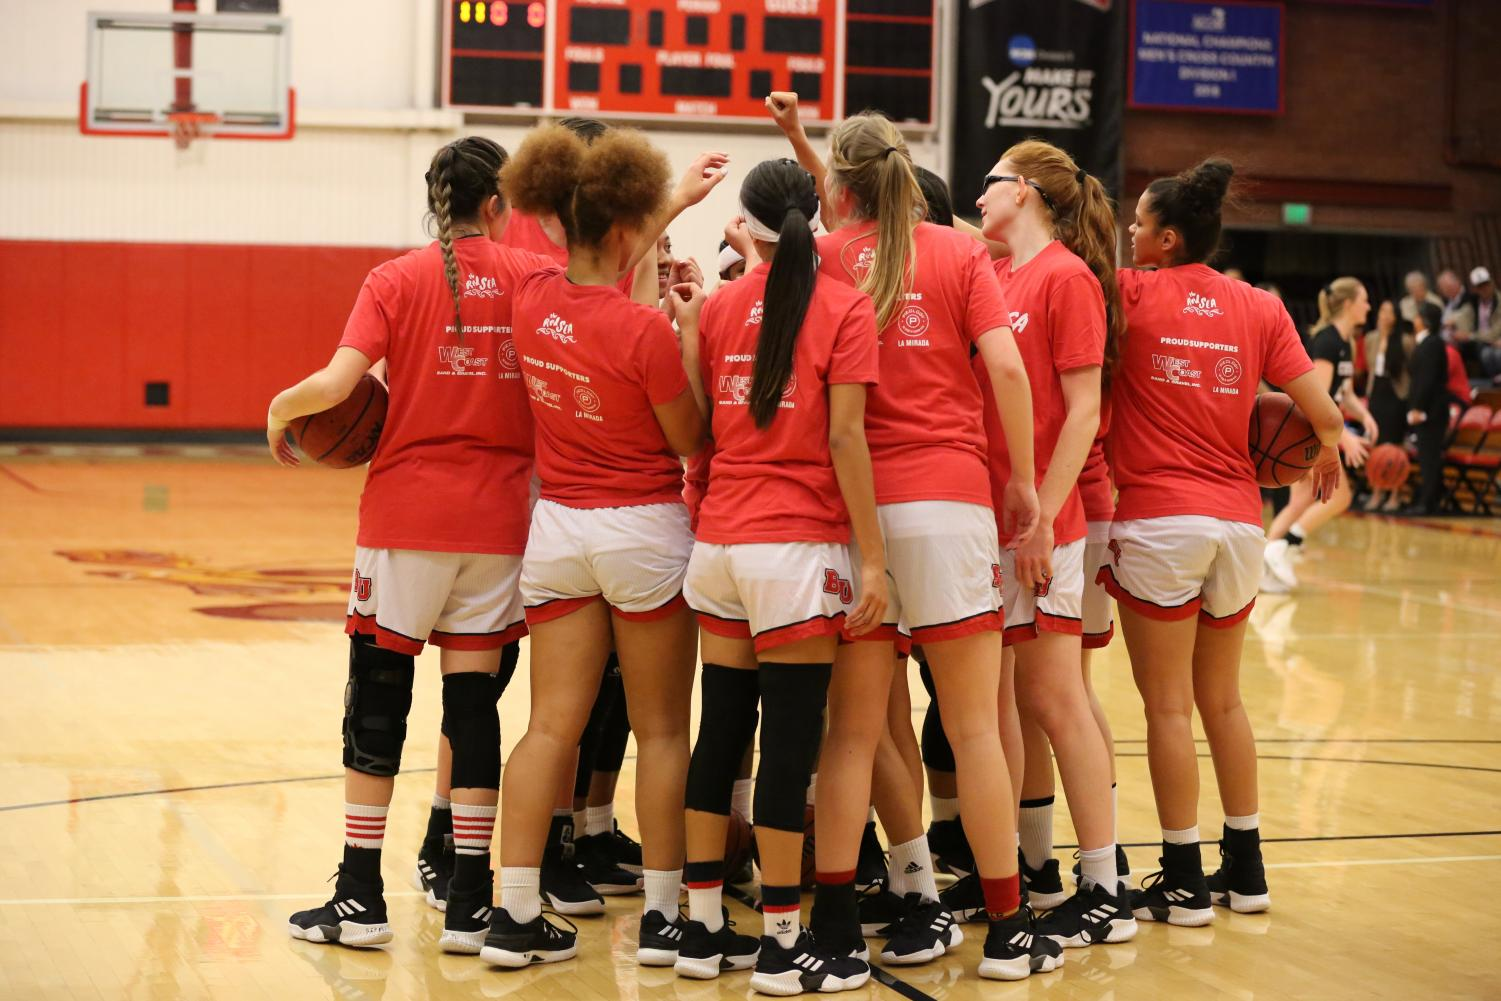 The women's basketball team comes together for one common goal, winning the 2019-20 NCAA Dll PacWest championship.